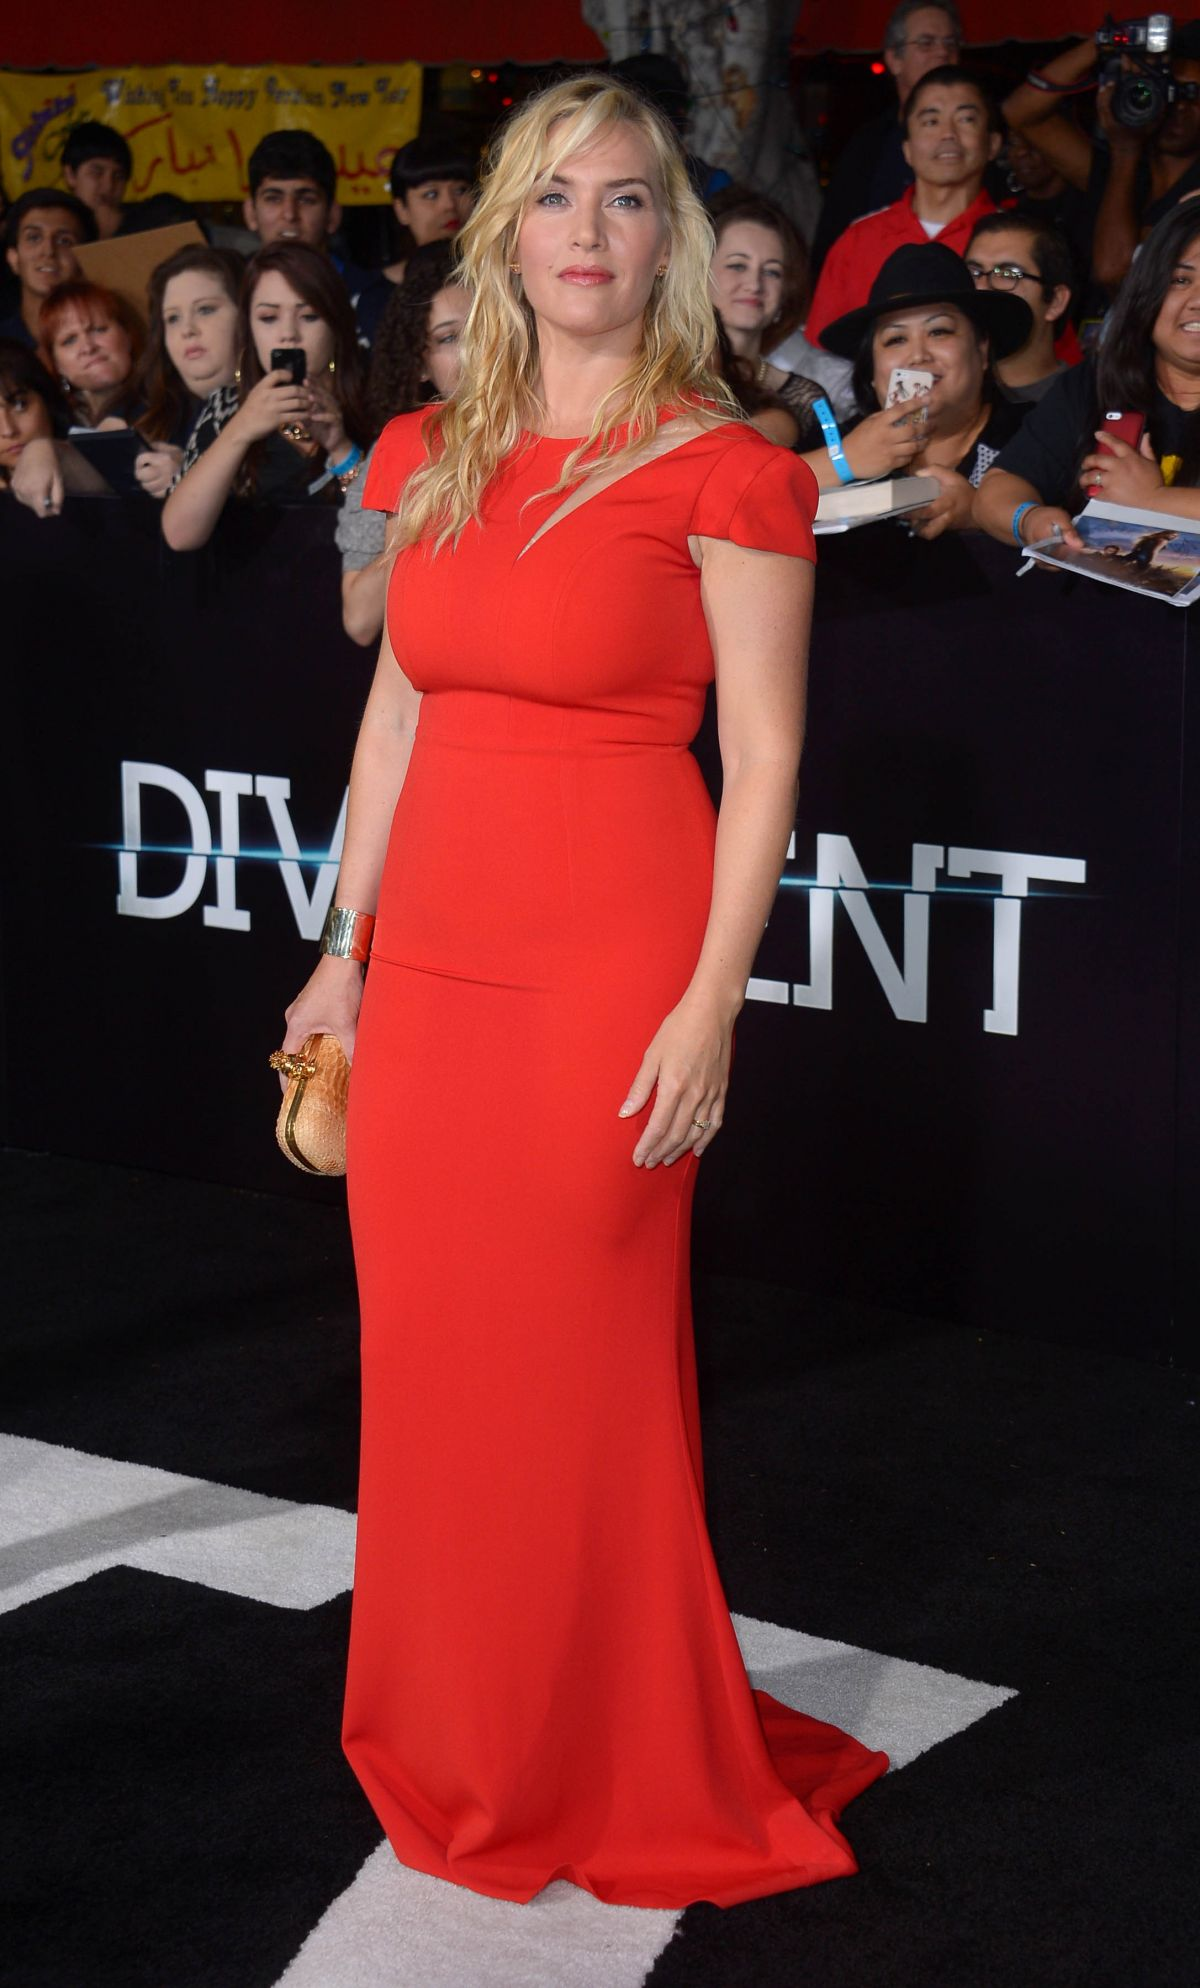 KATE WINSLET at Divergent Premiere in Los Angeles - HawtCelebs